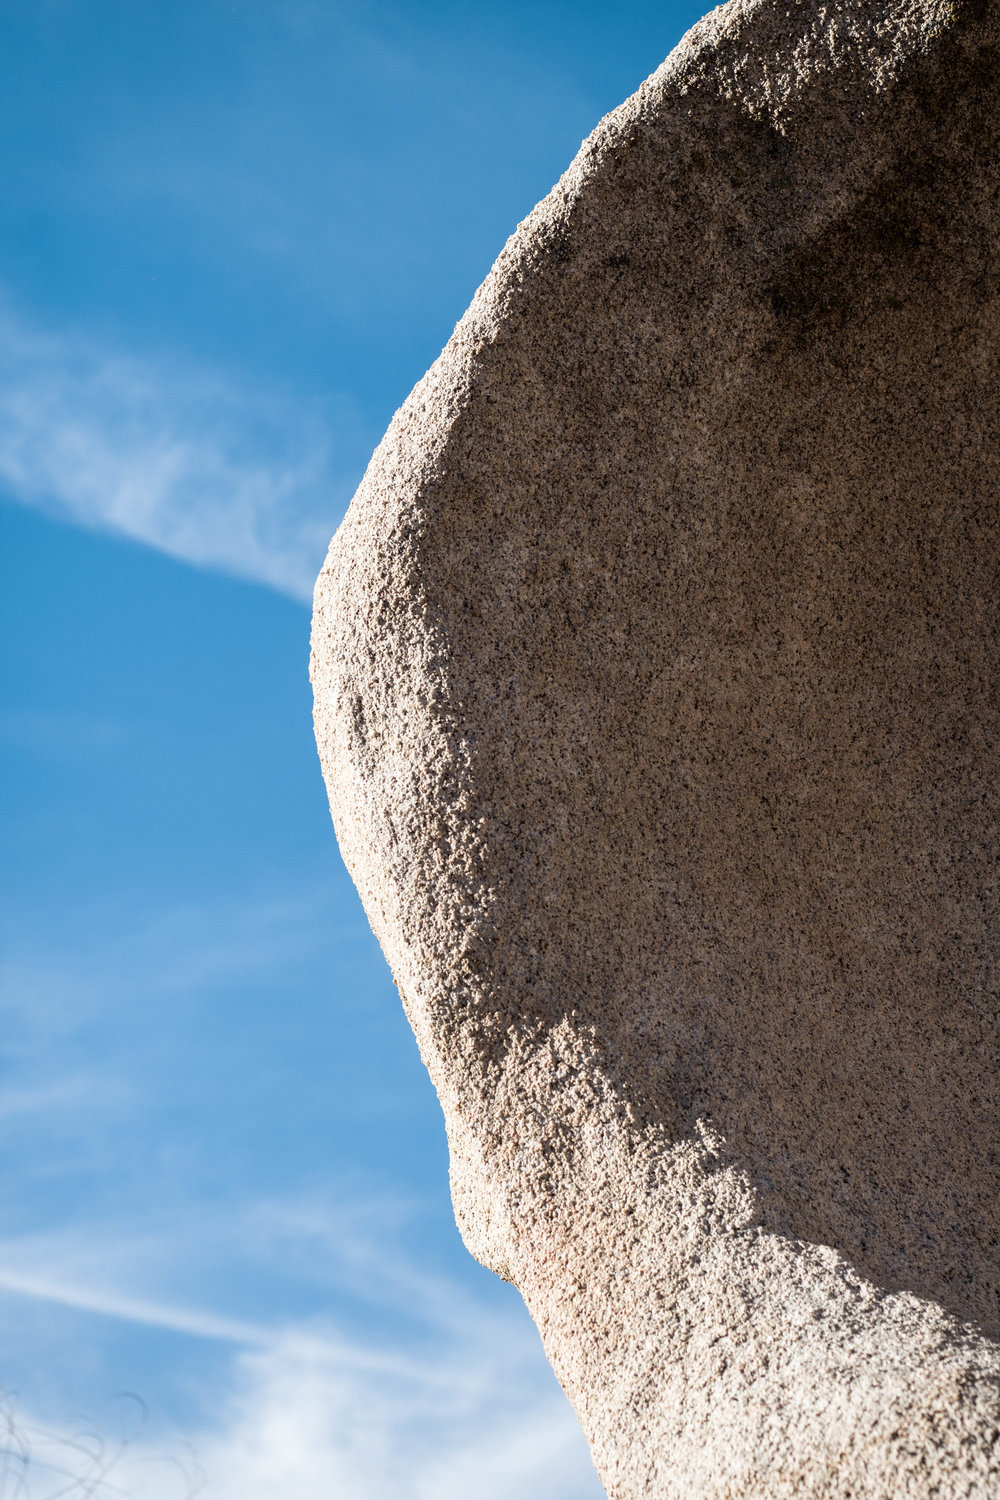 unsettle-co-lifestyle-blog-spaces-joshua-tree-national-park-rock-and-sky